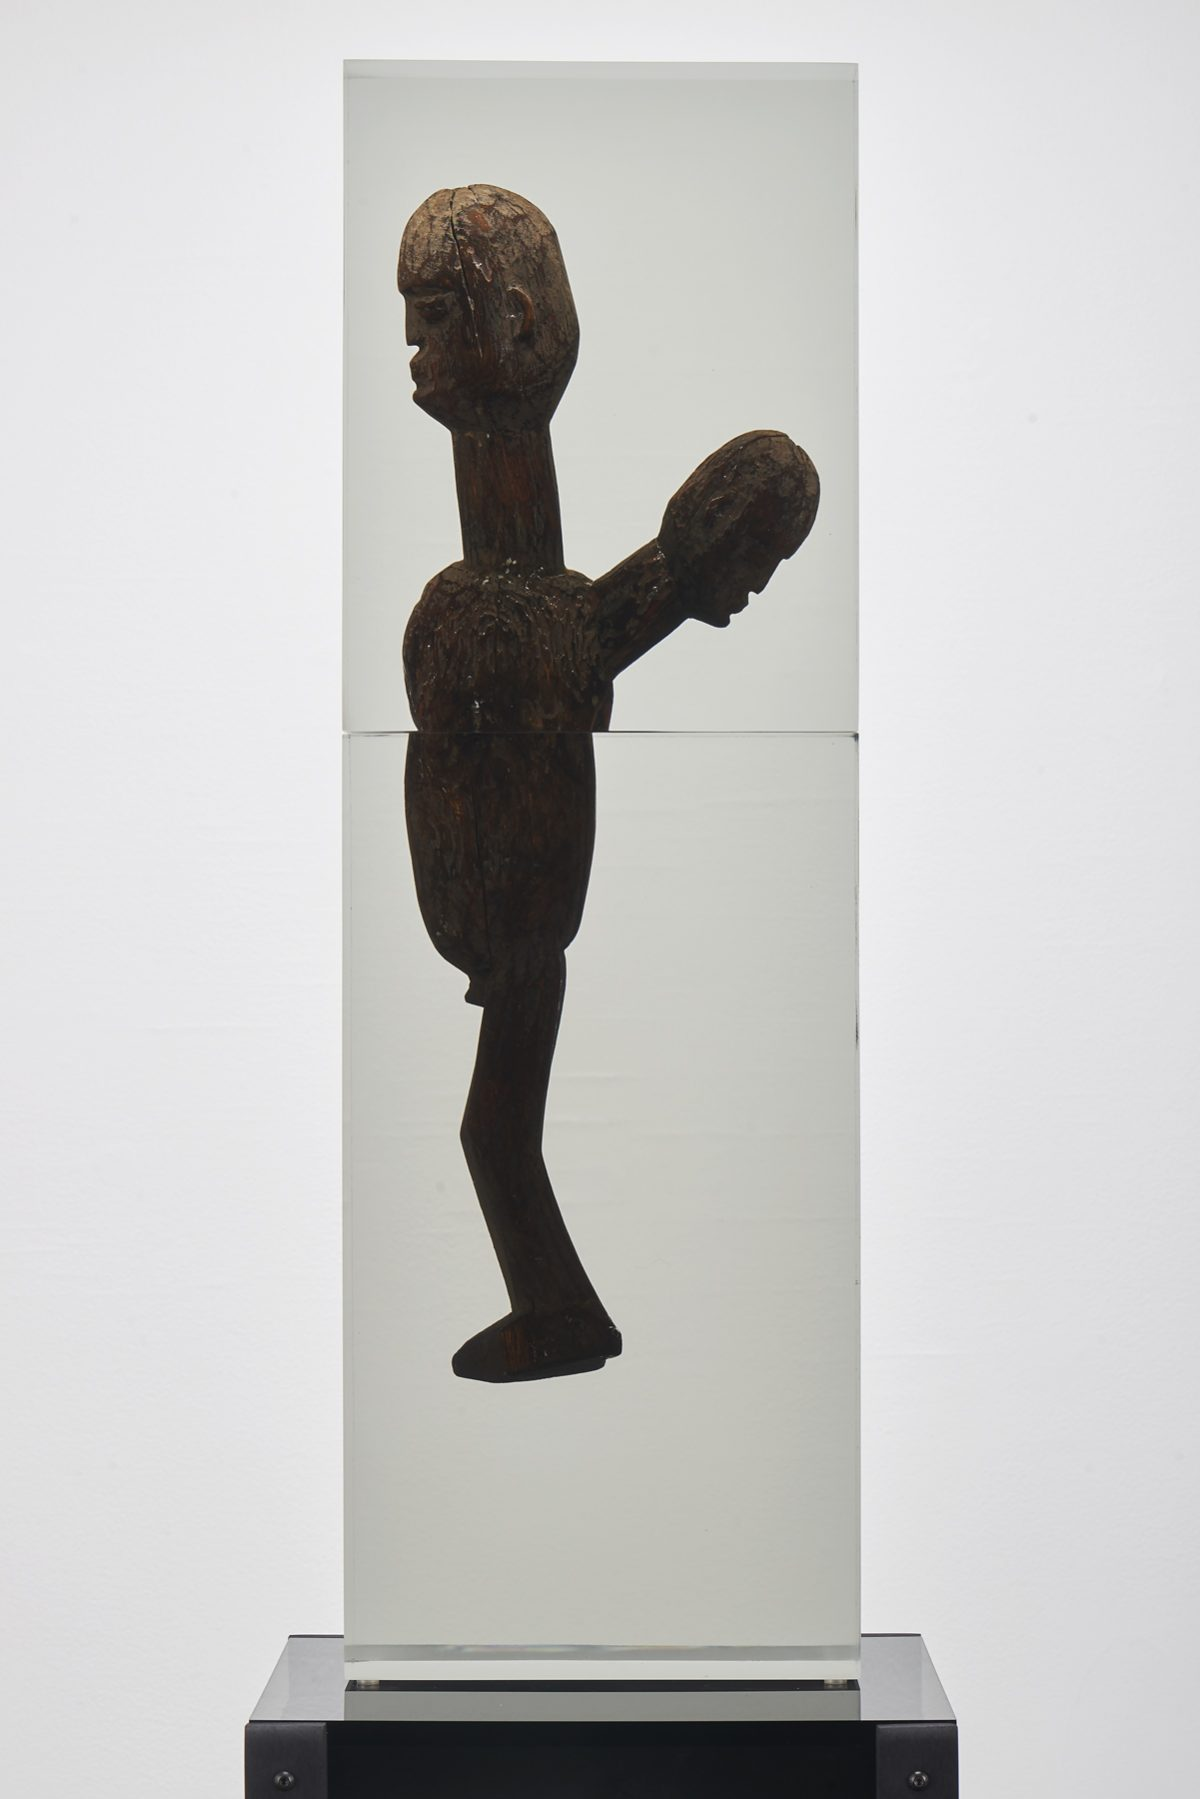 <i>Dark Silhouette: Enduring Father</i><br> Wooden sculpture from West Africa, polyurethane resin, anodized aluminum, acrylic<br> Sculpture: 31 x 9 3/4 x 4 inches / 78.7 x 24.9 x 10.2 cm<br> Overall: 67 x 13 x 13 inches / 170.2 x 33 x 33 cm<br> 2018